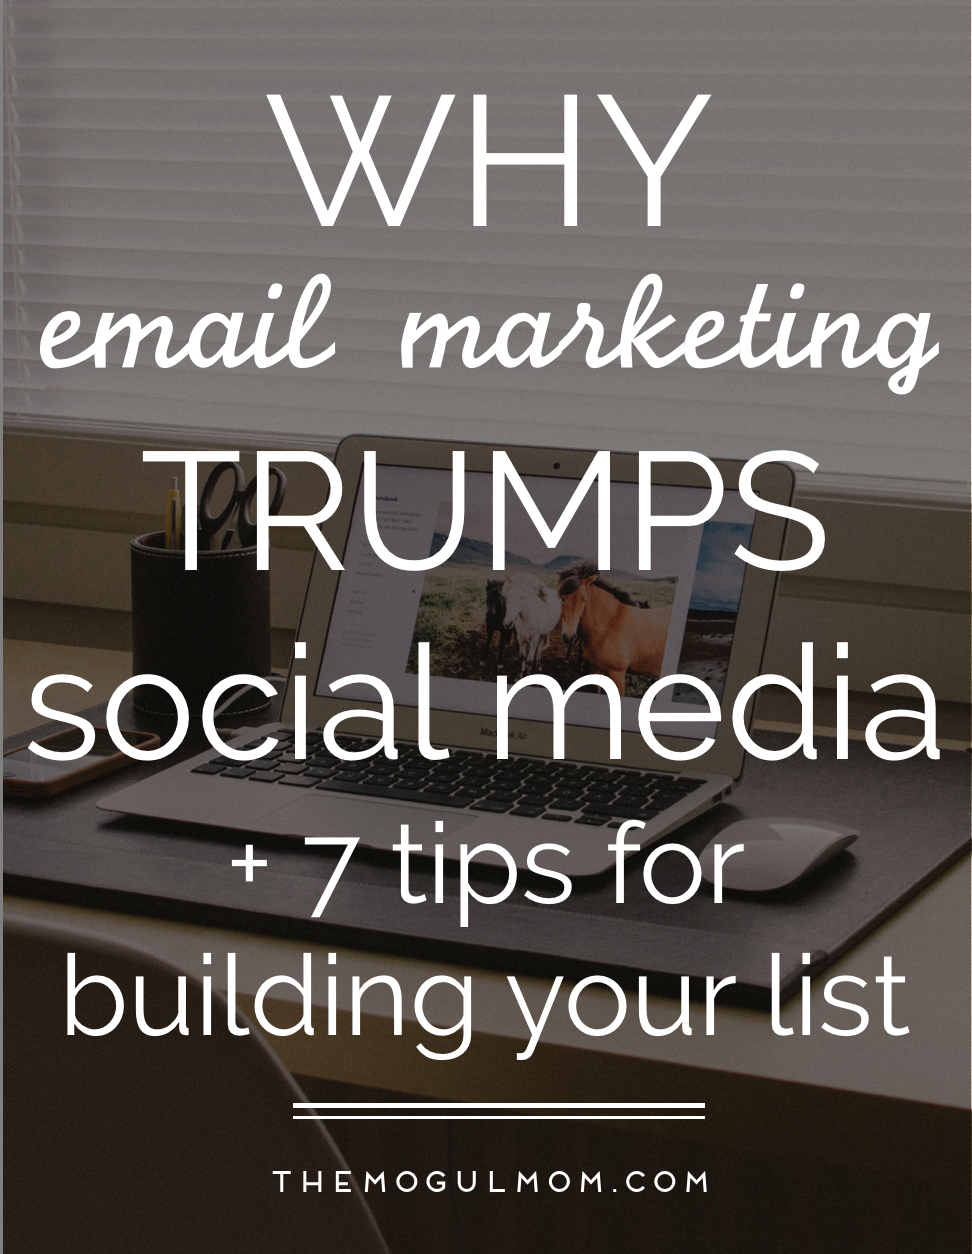 Why Email Marketing Trumps Social Media (And 7 Tips for Building Your List)